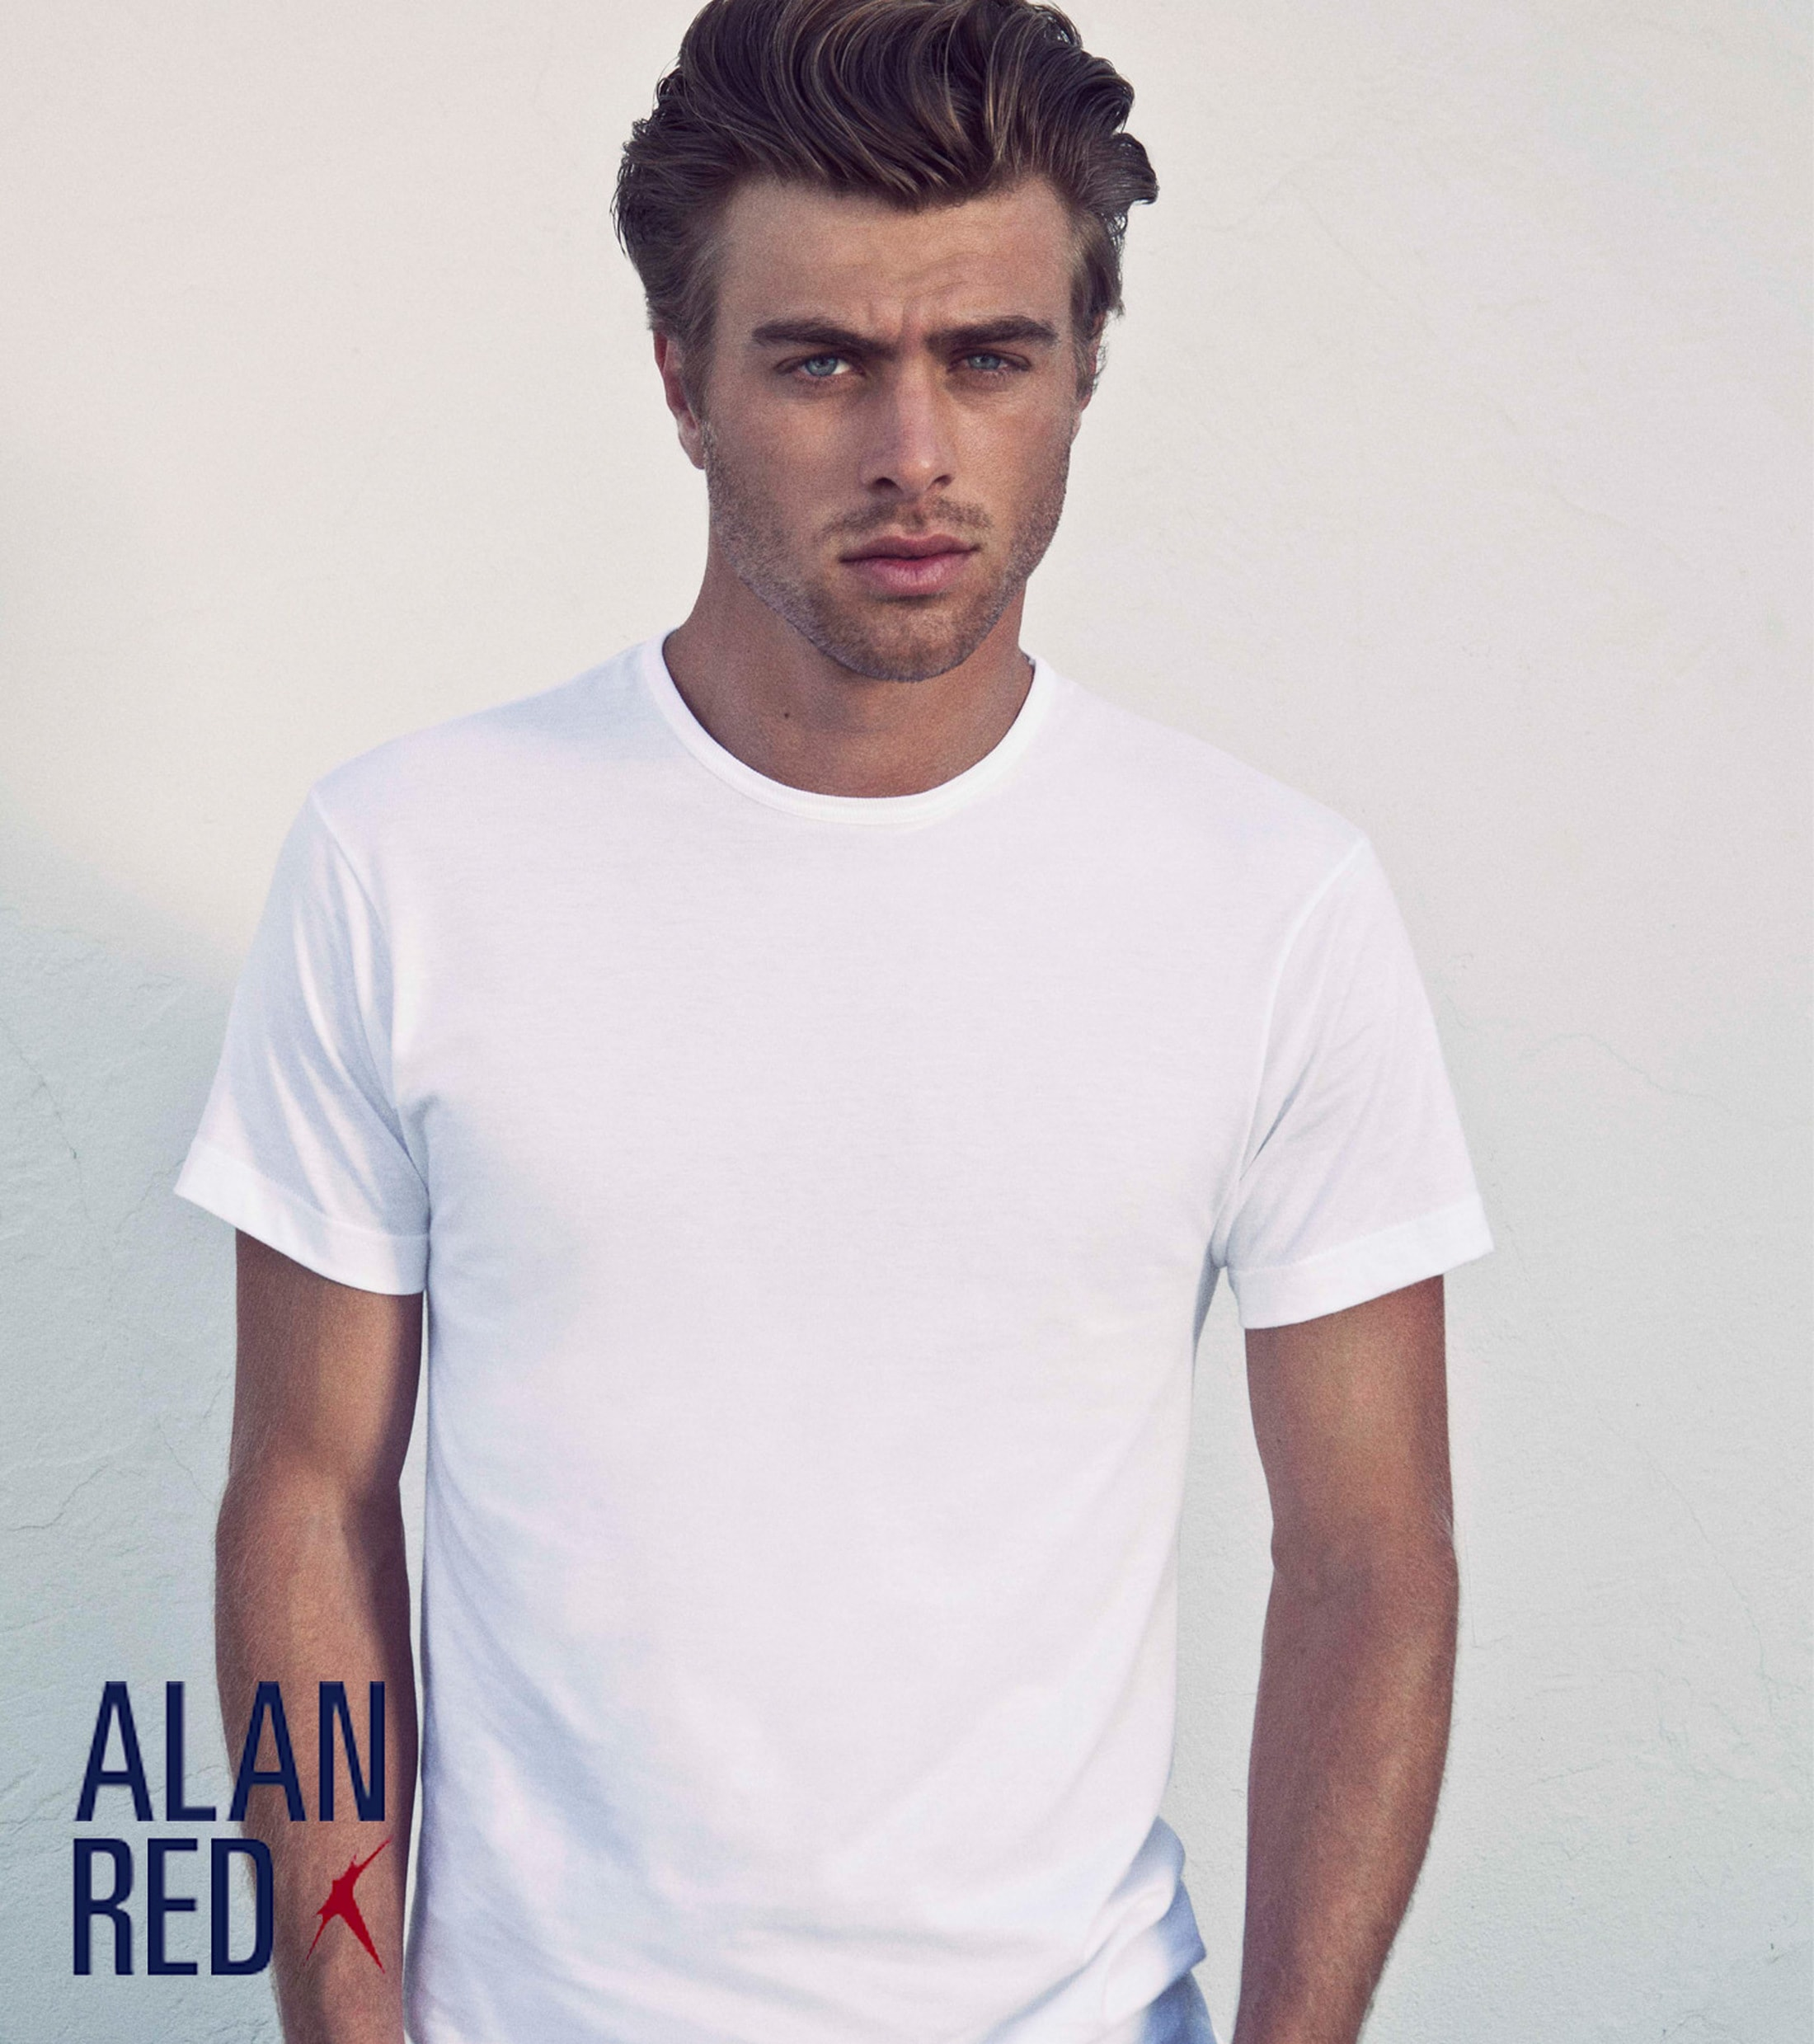 Alan Red Derby O-Neck T-shirt Navy 1-Pack foto 3